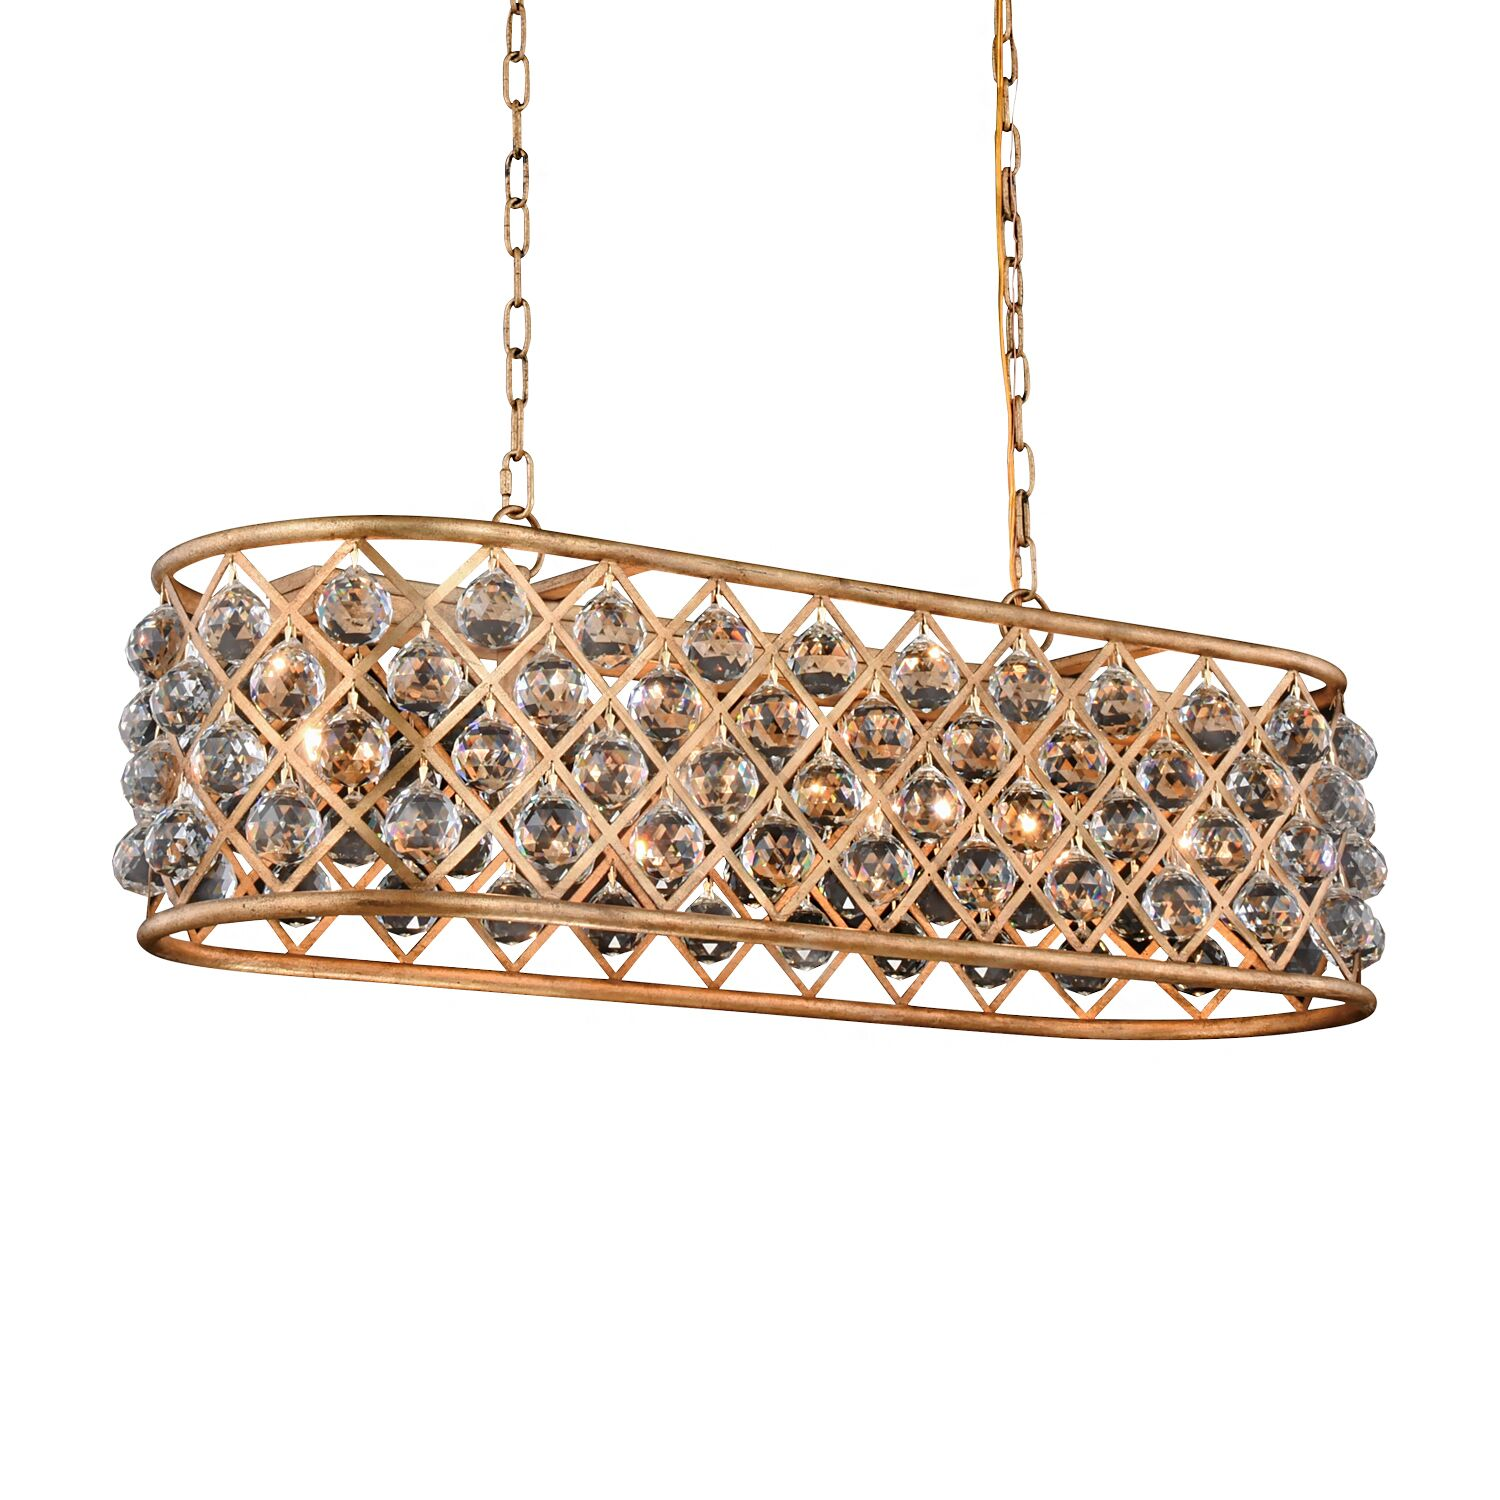 Lulsgate 6-Light Chandelier Shade Color: Clear, Finish: Gold, Bulb Type: Incandescent